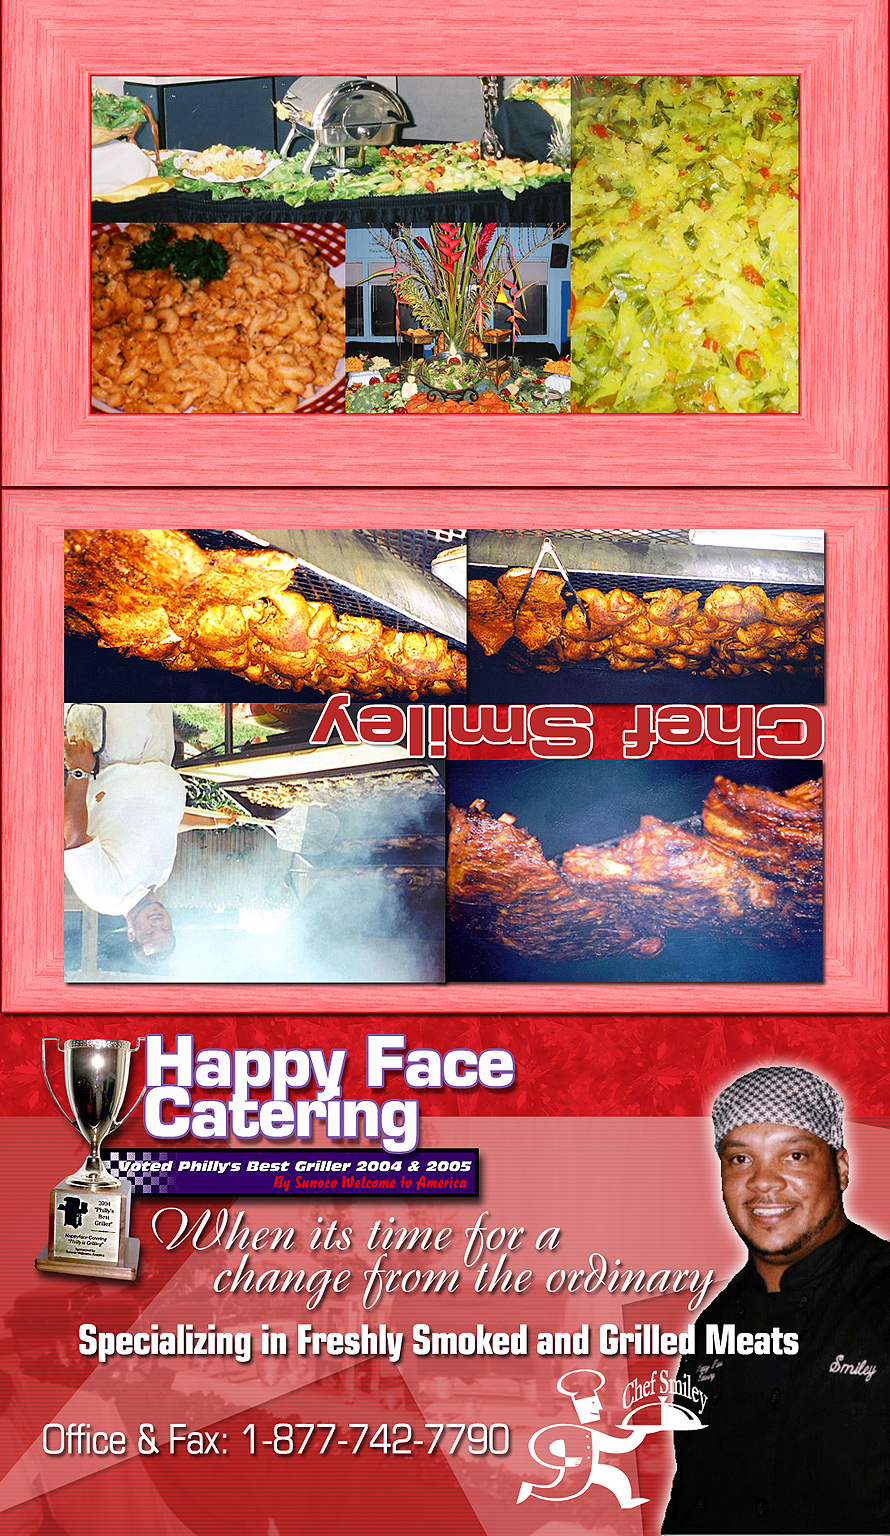 Happy Face Catering